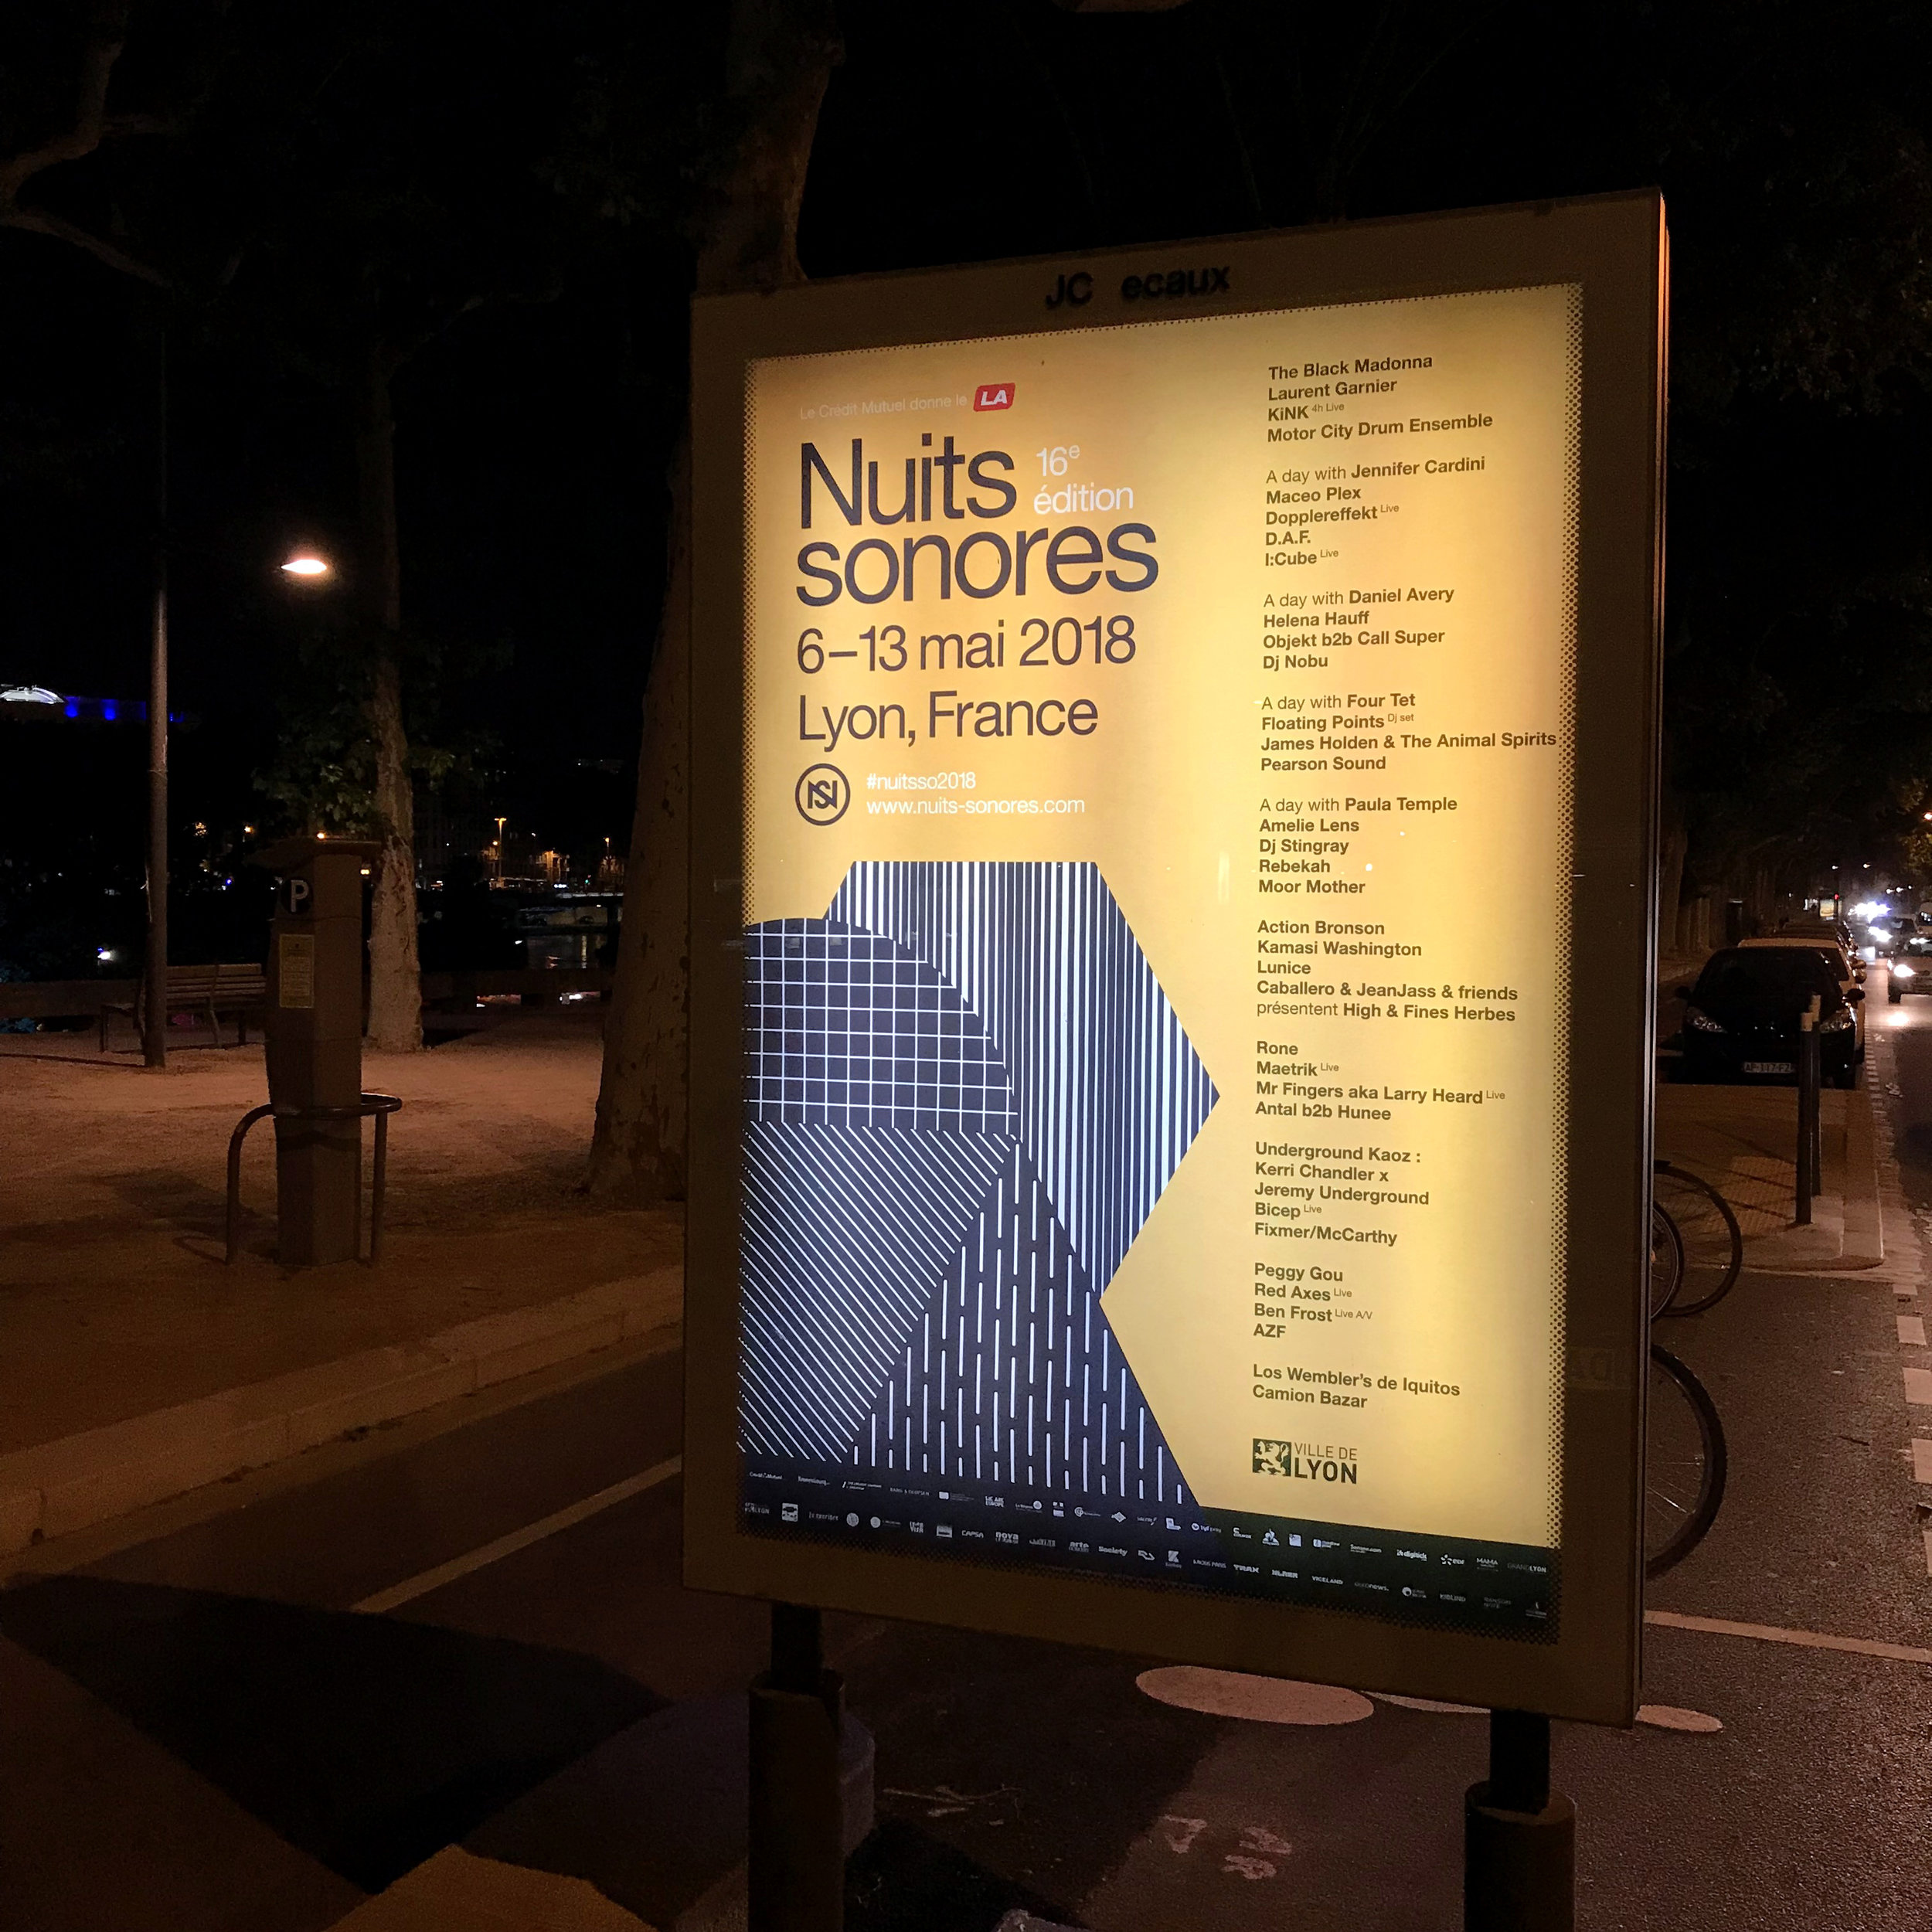 Nuits-sonores-poster.jpg